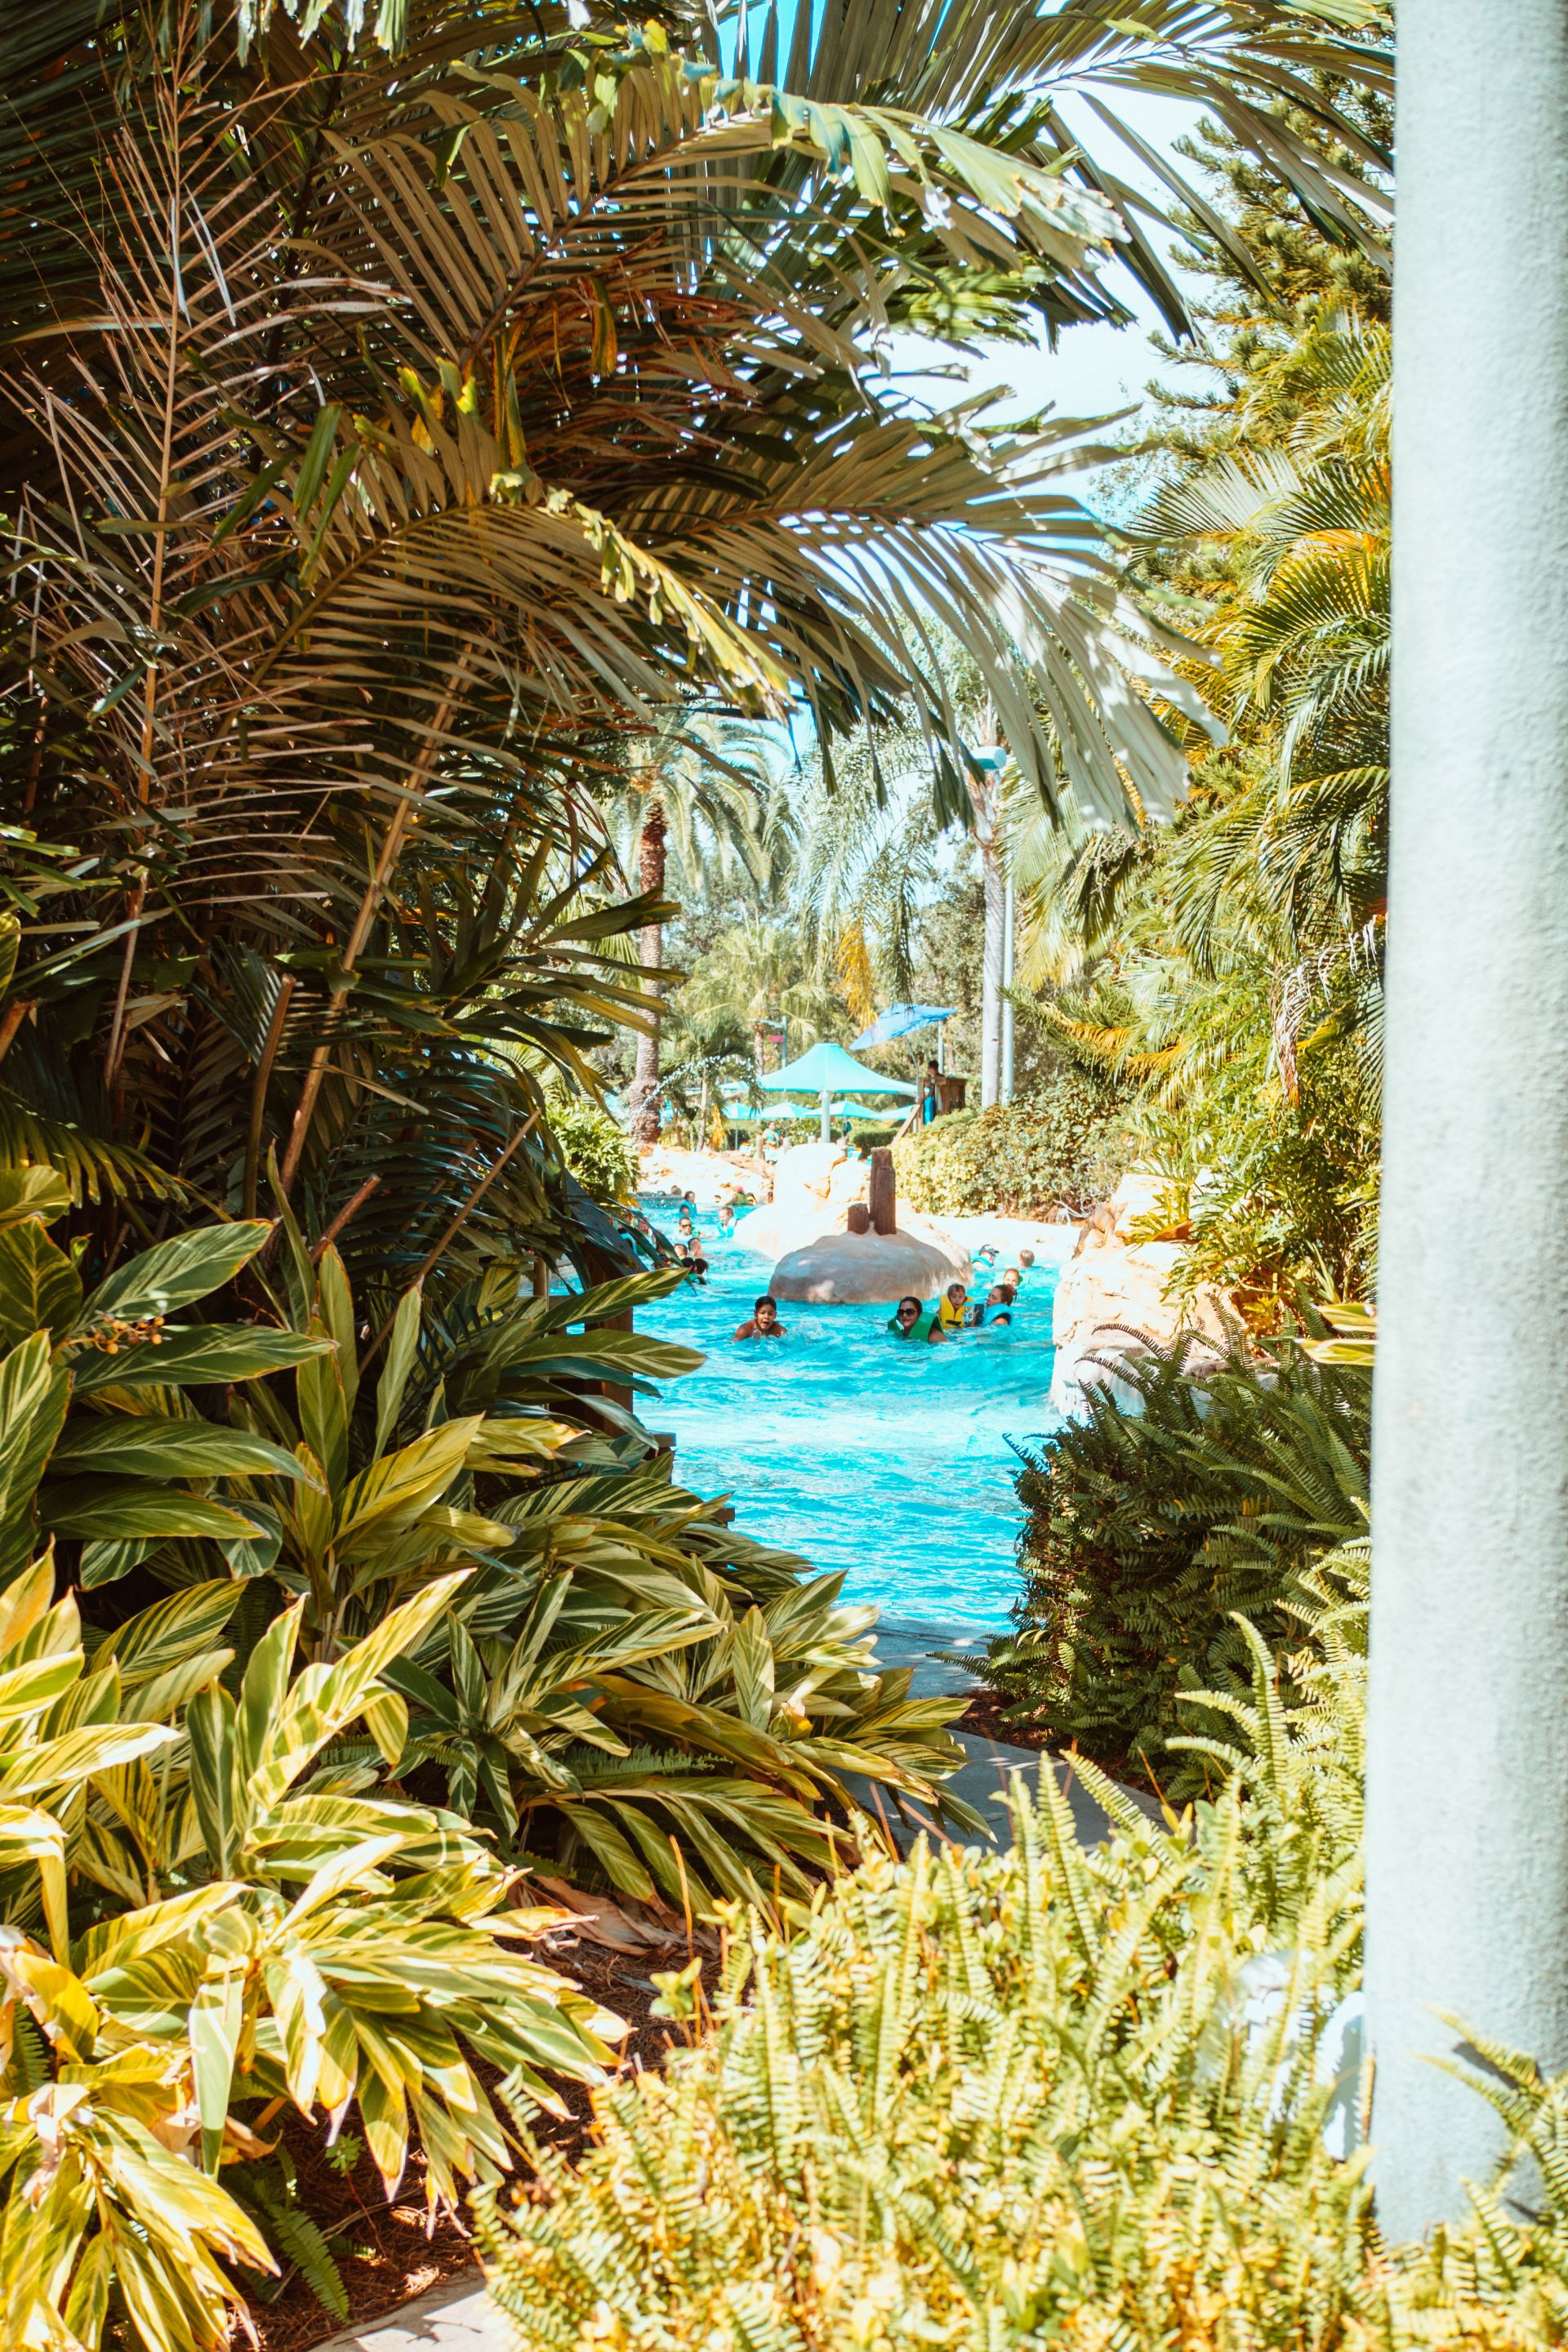 lazy river at Aquatica